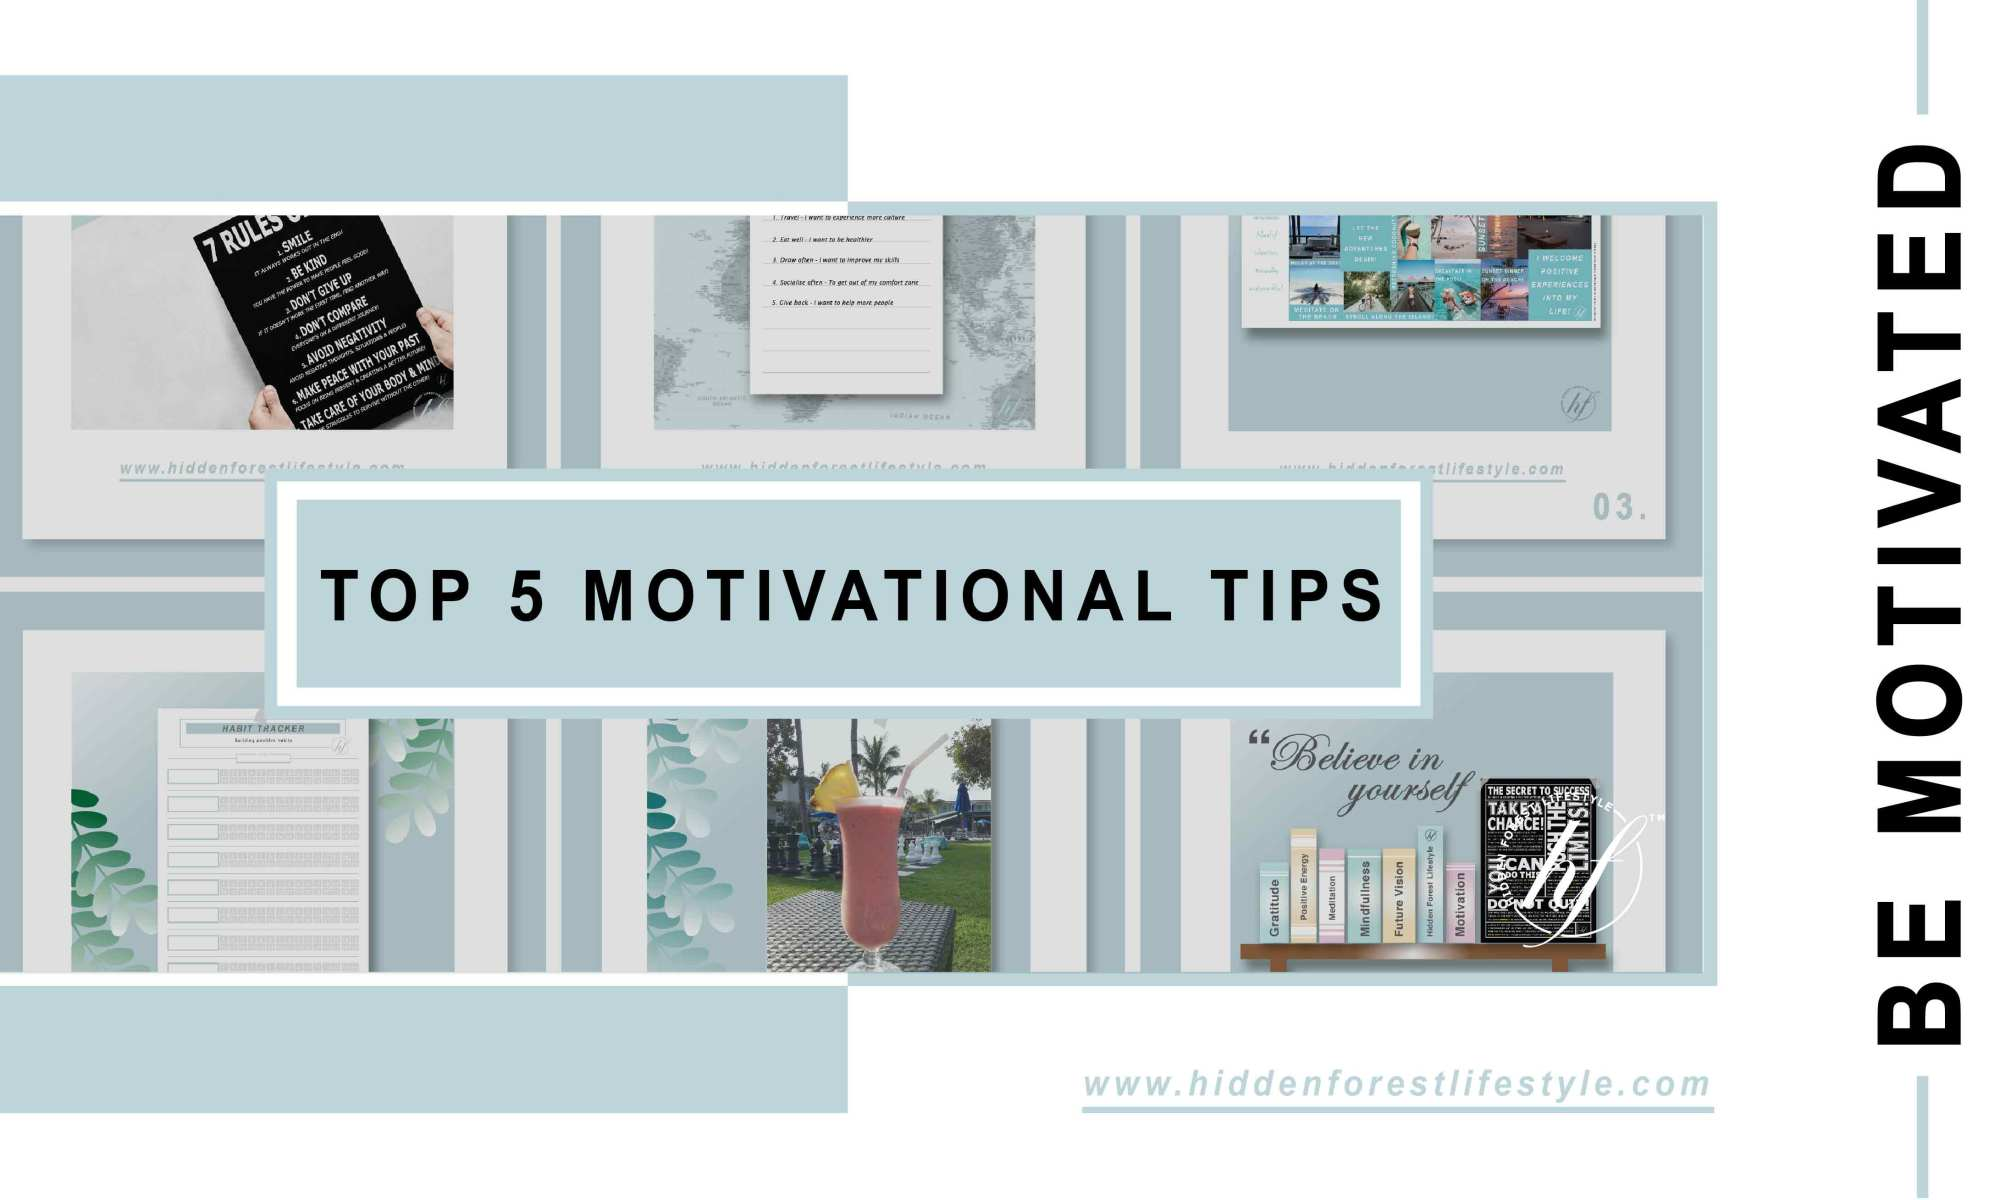 TOP 5 MOTIVATIONAL TIPS BY HIDDEN FOREST LIFESTYLE